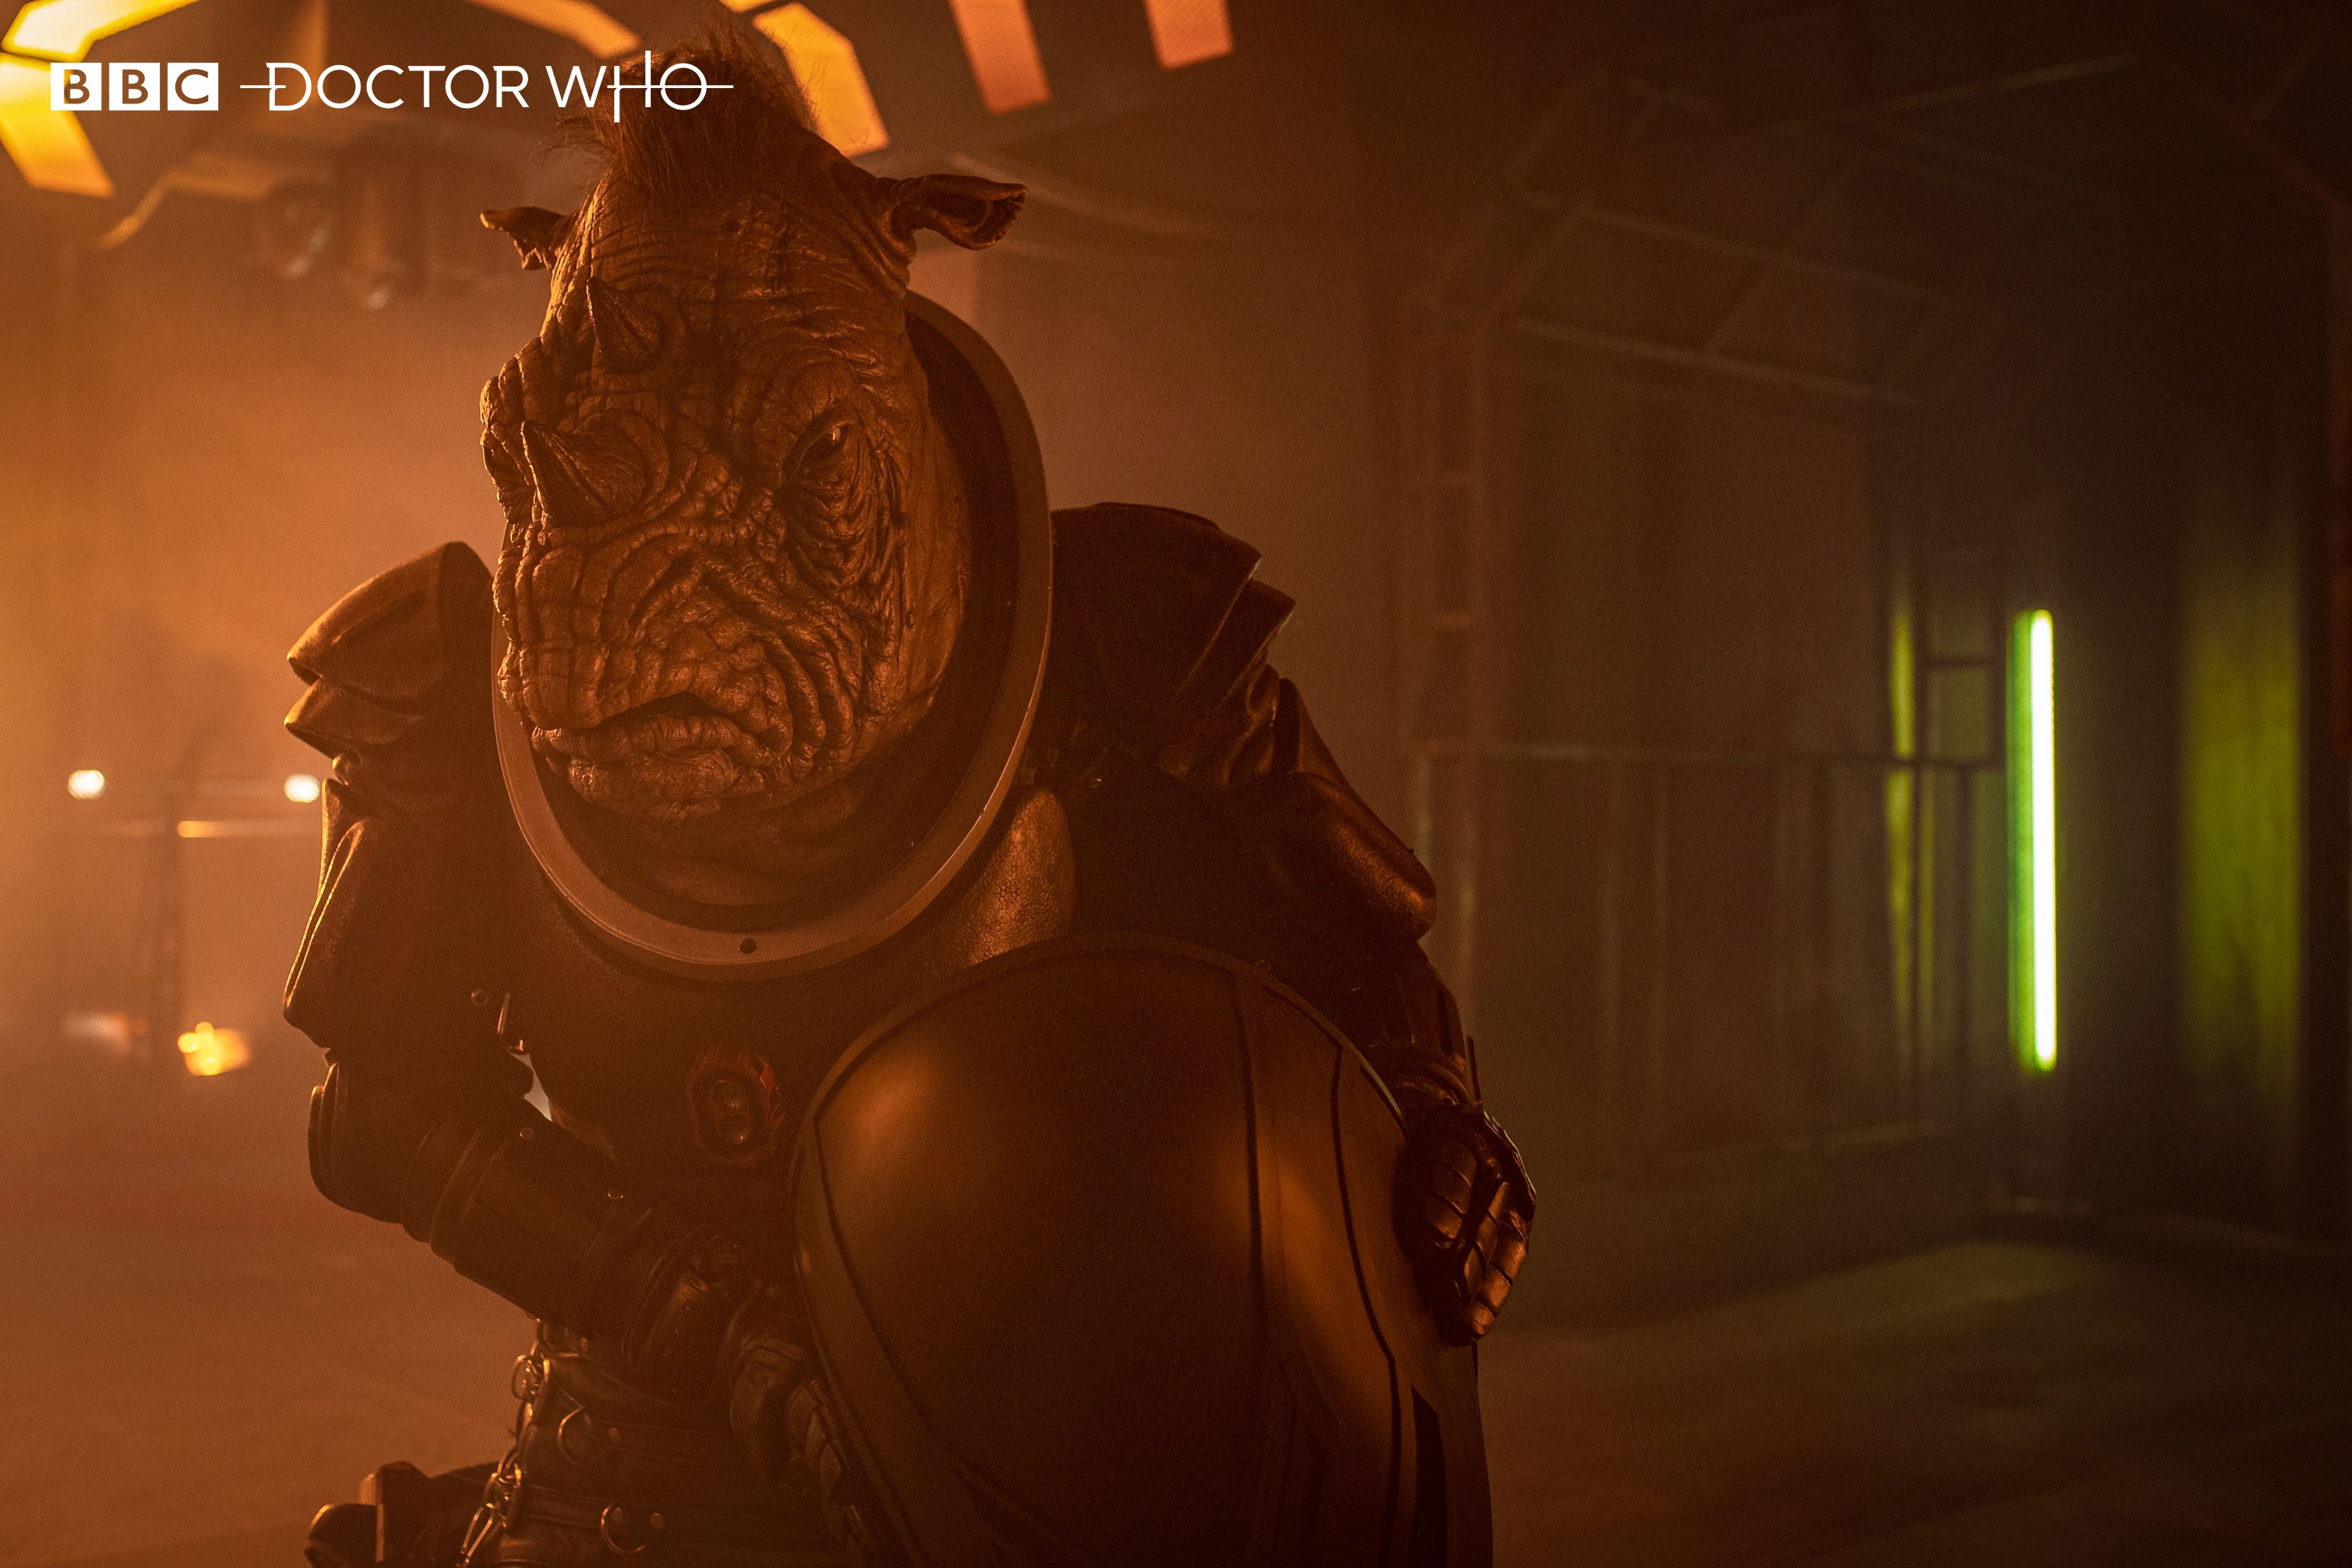 Doctor Who - Fugitive of the Judoon